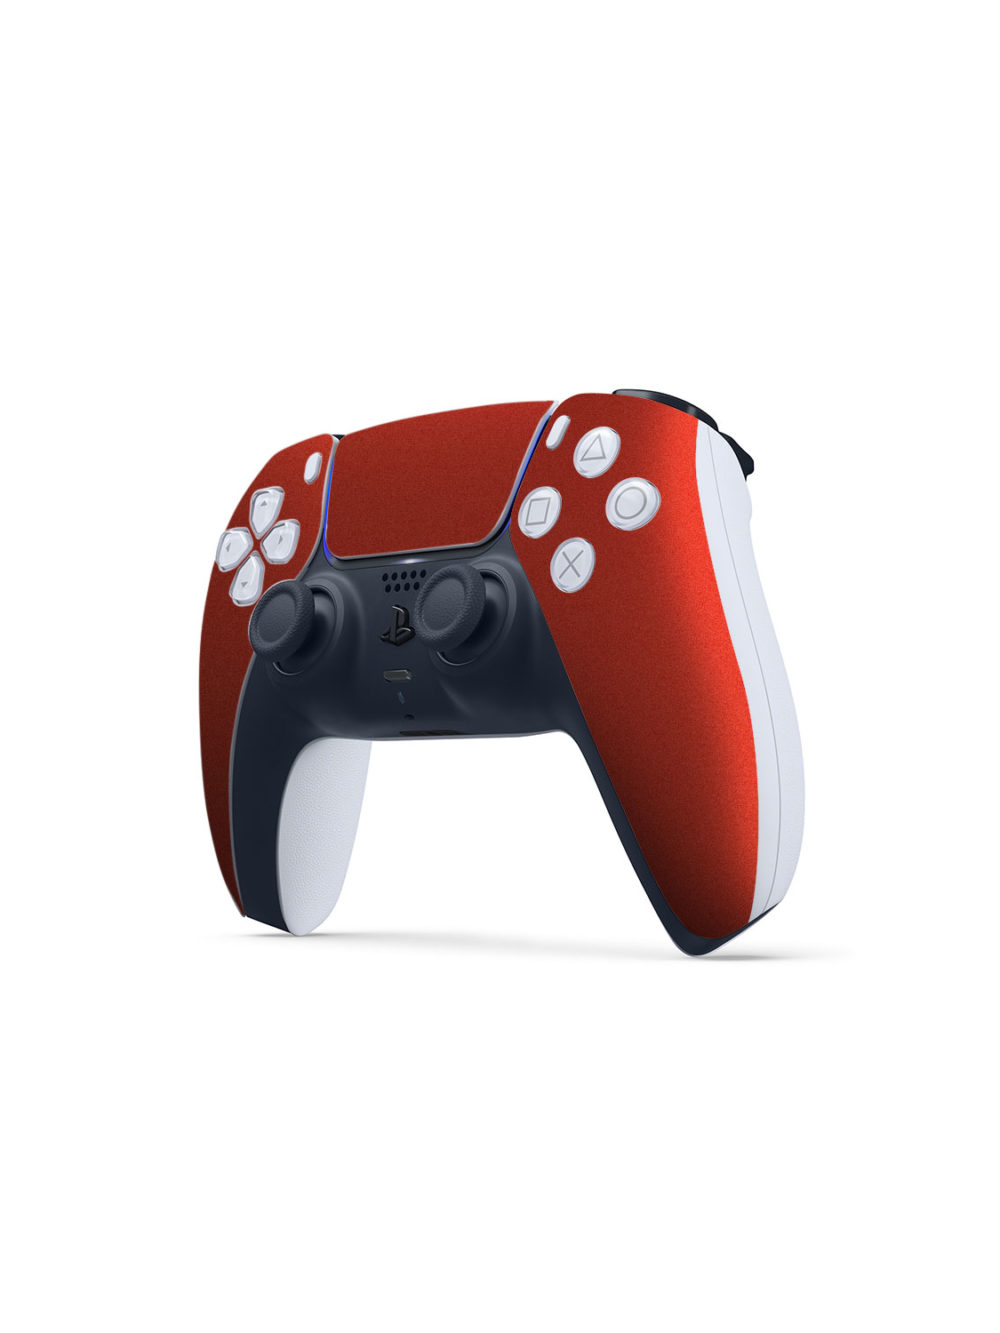 Gloss Vengeance Red Skin Wrap Sony PS5 DualSense Controller